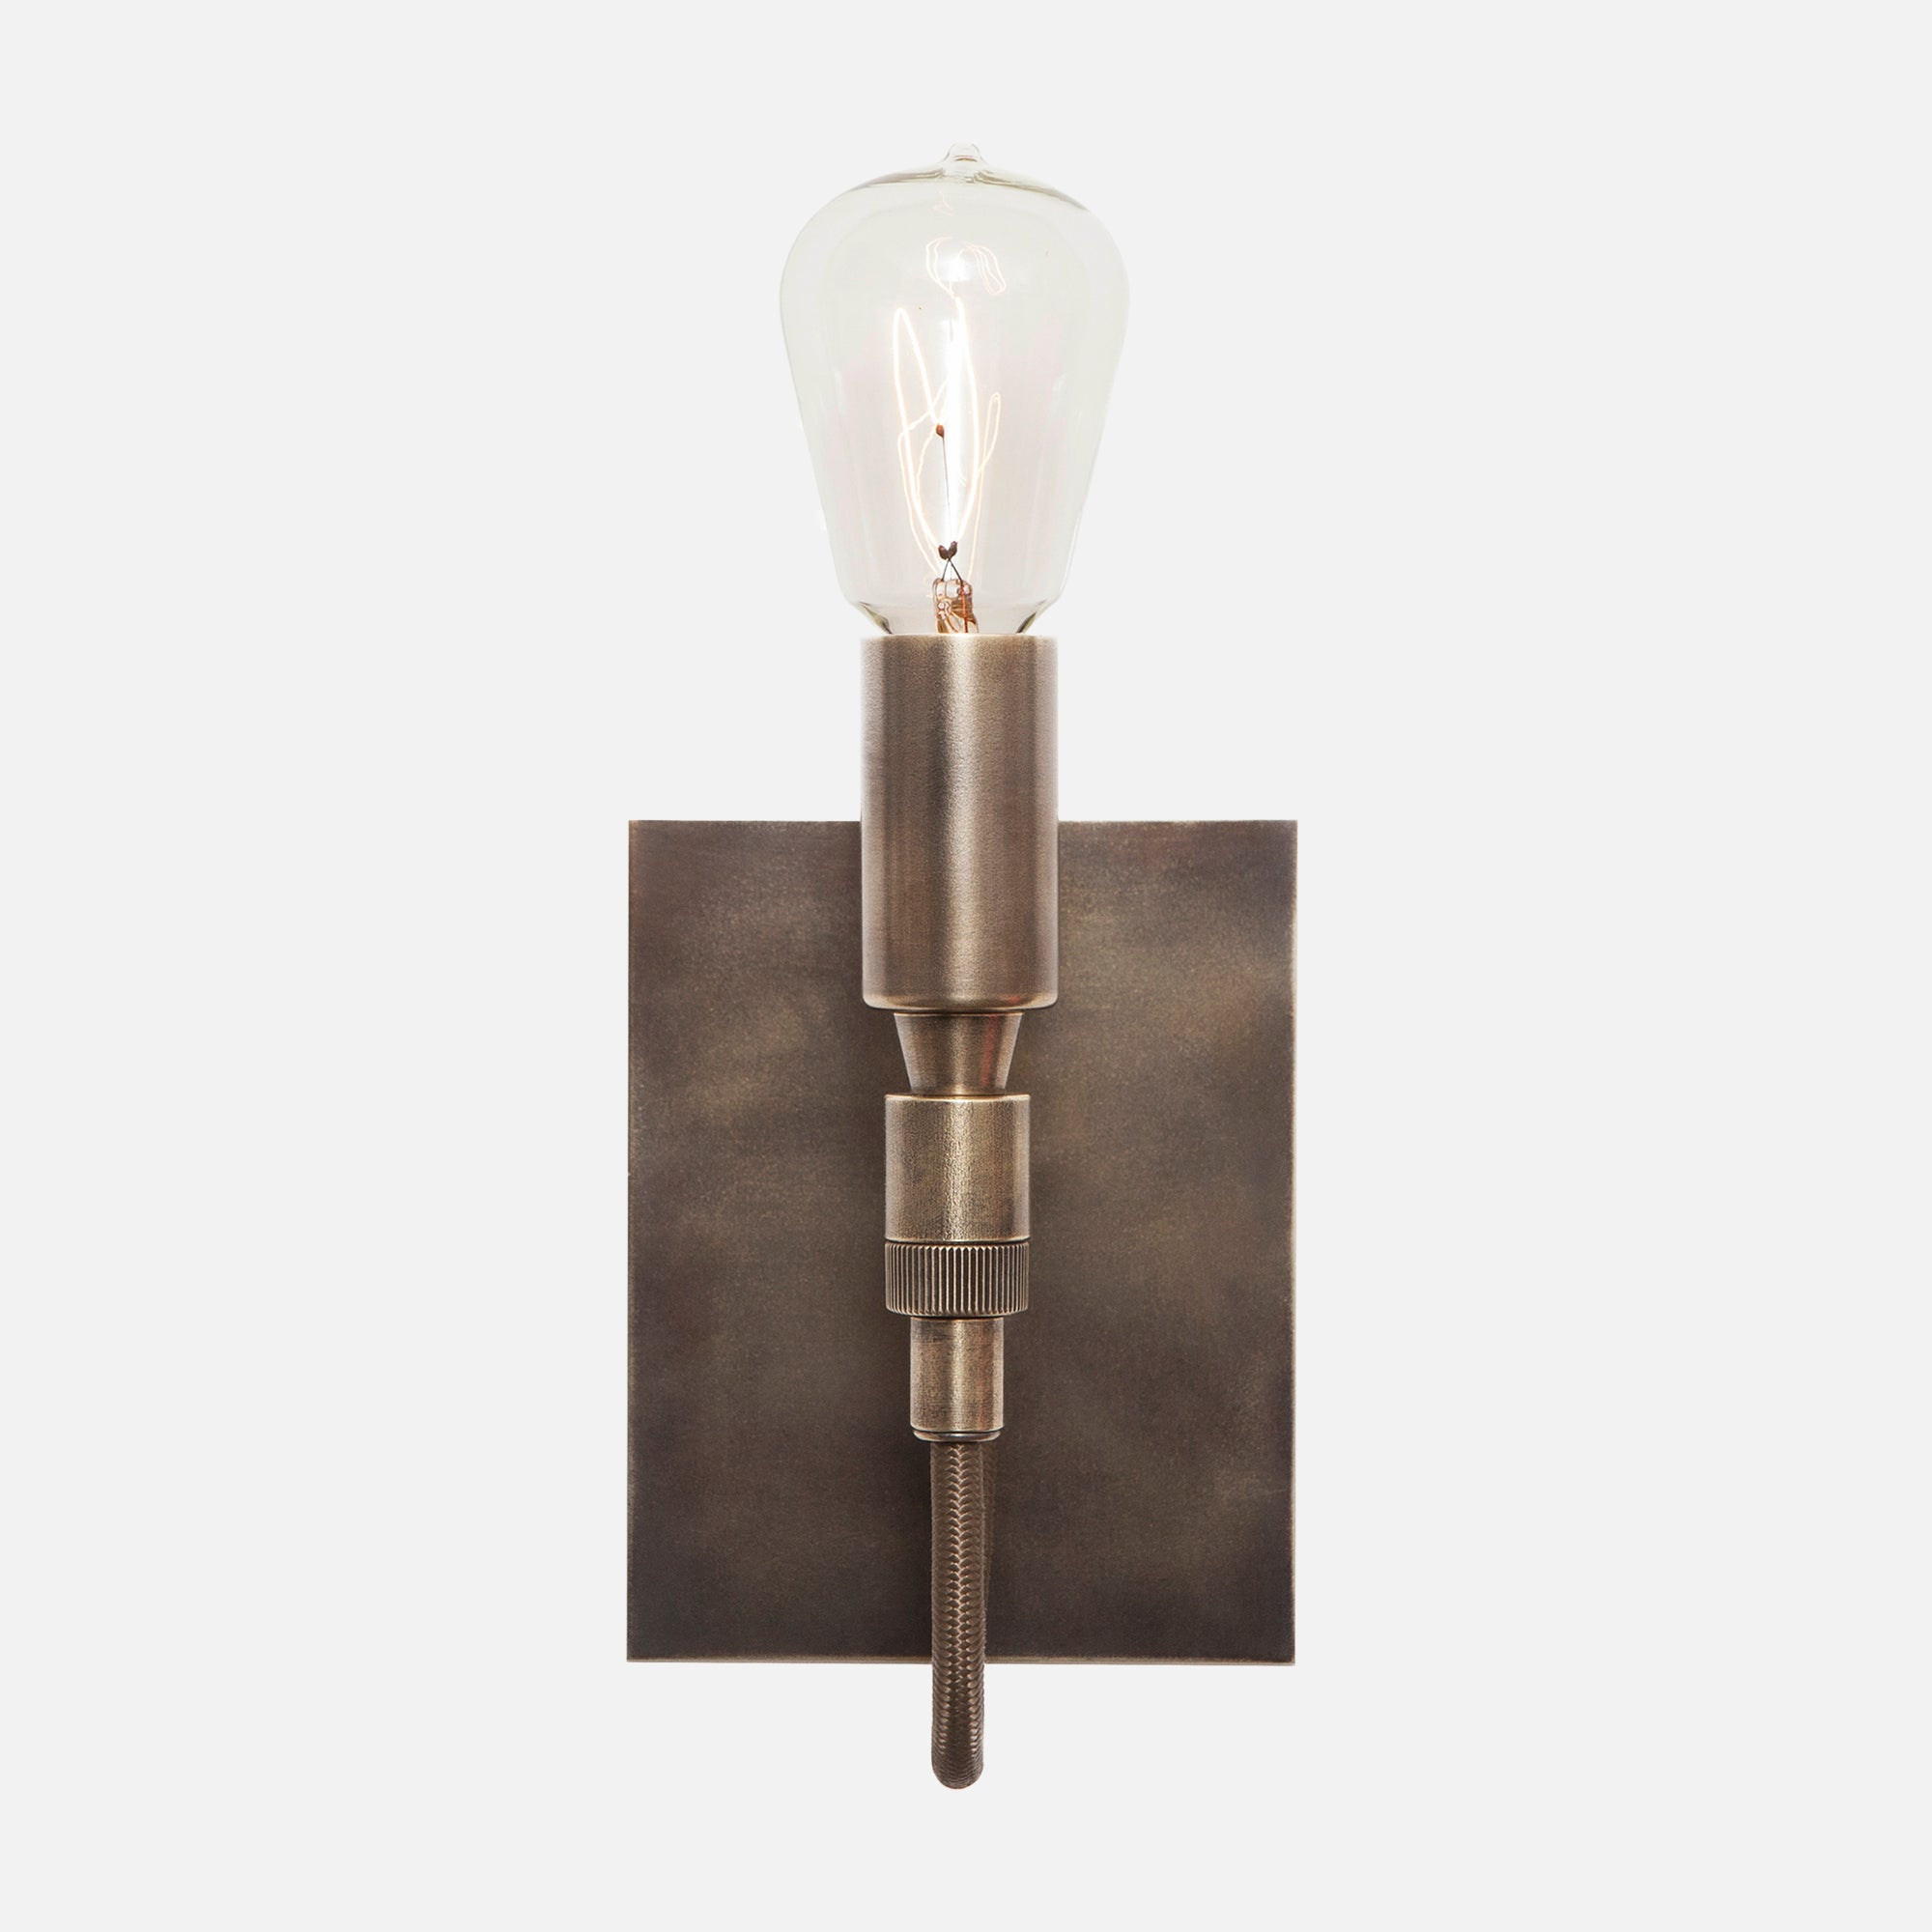 Bespoke Mini Wall Sconce